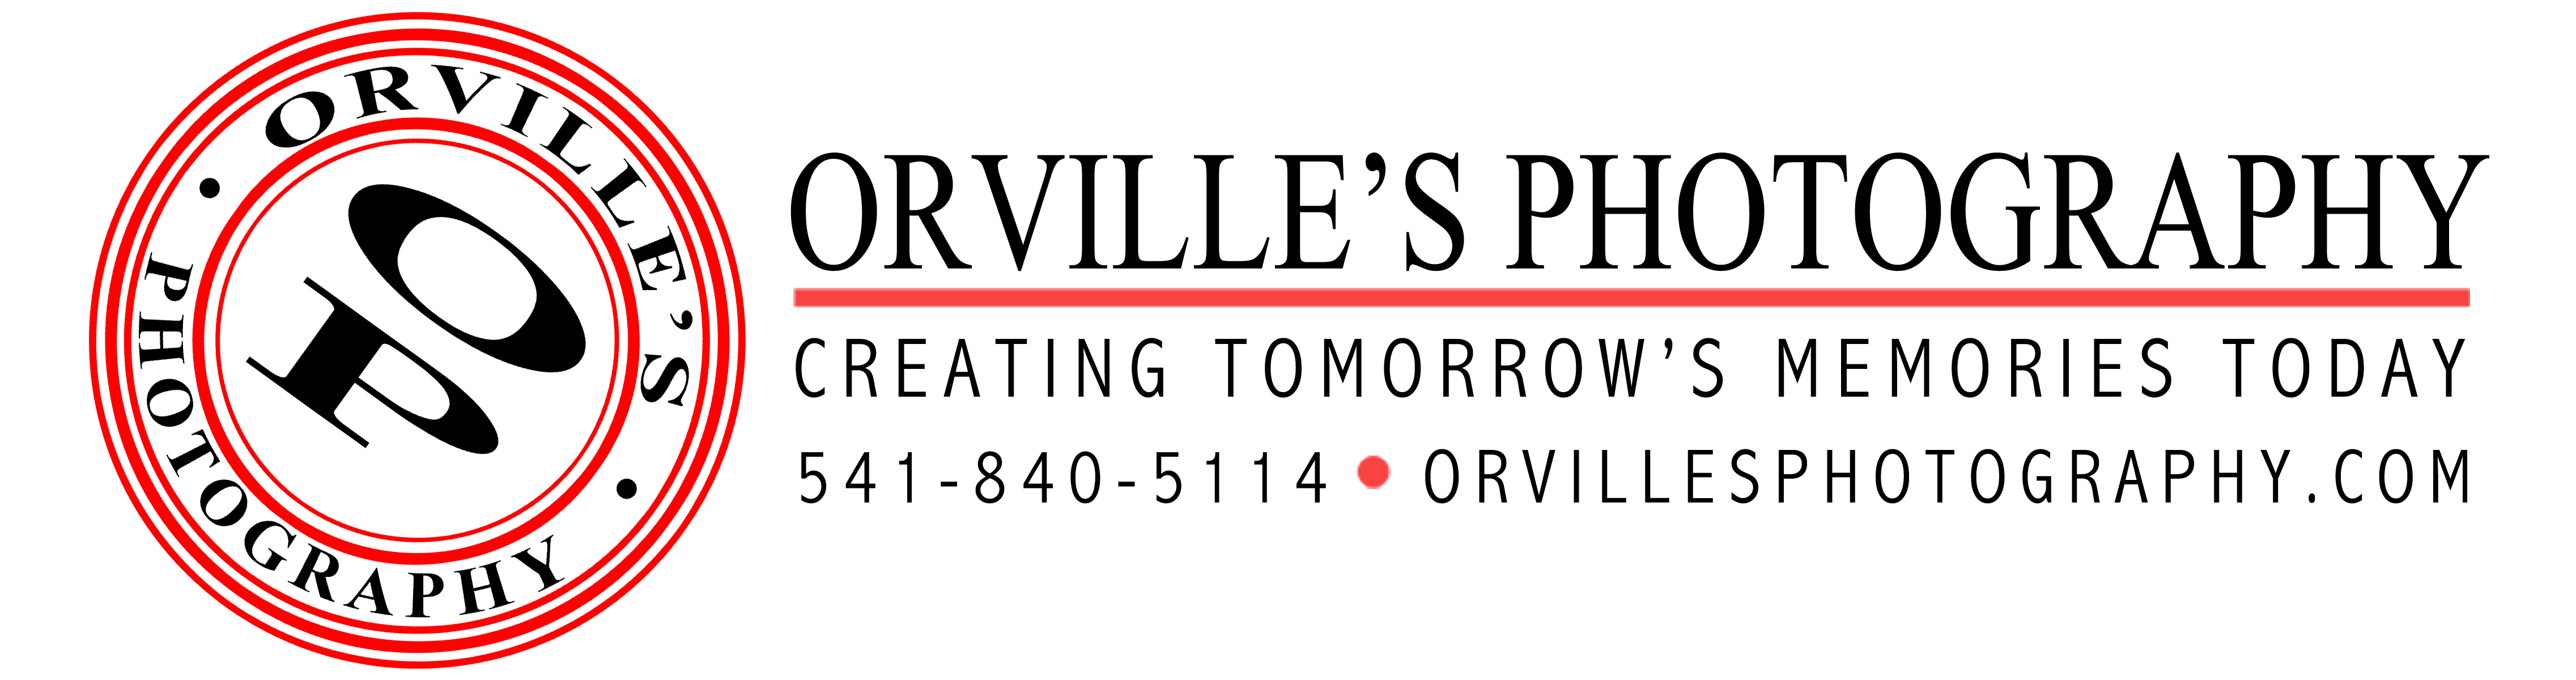 Orville's Photography